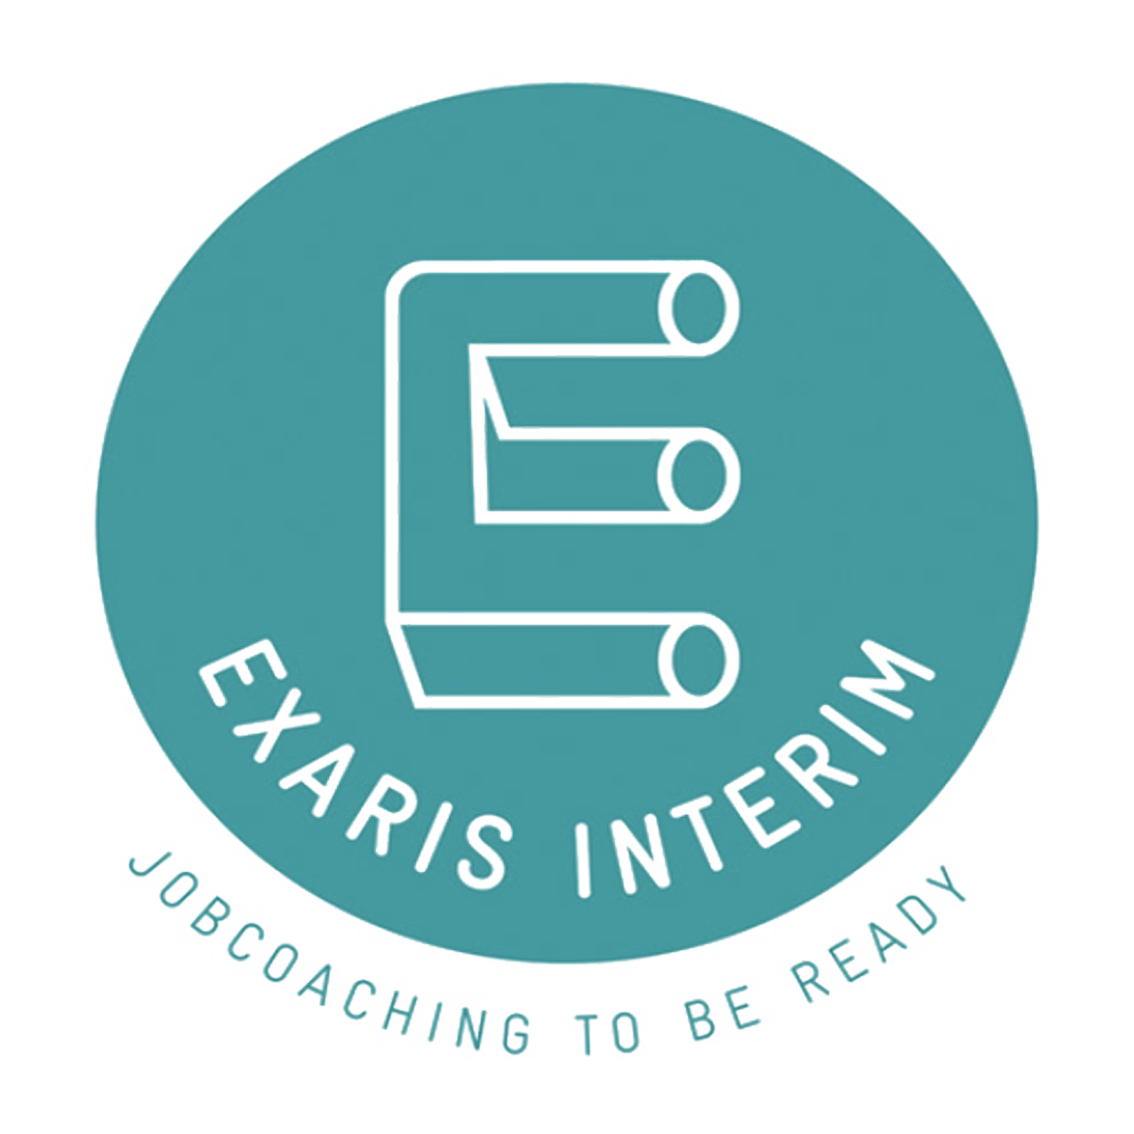 https://www.exaris.be